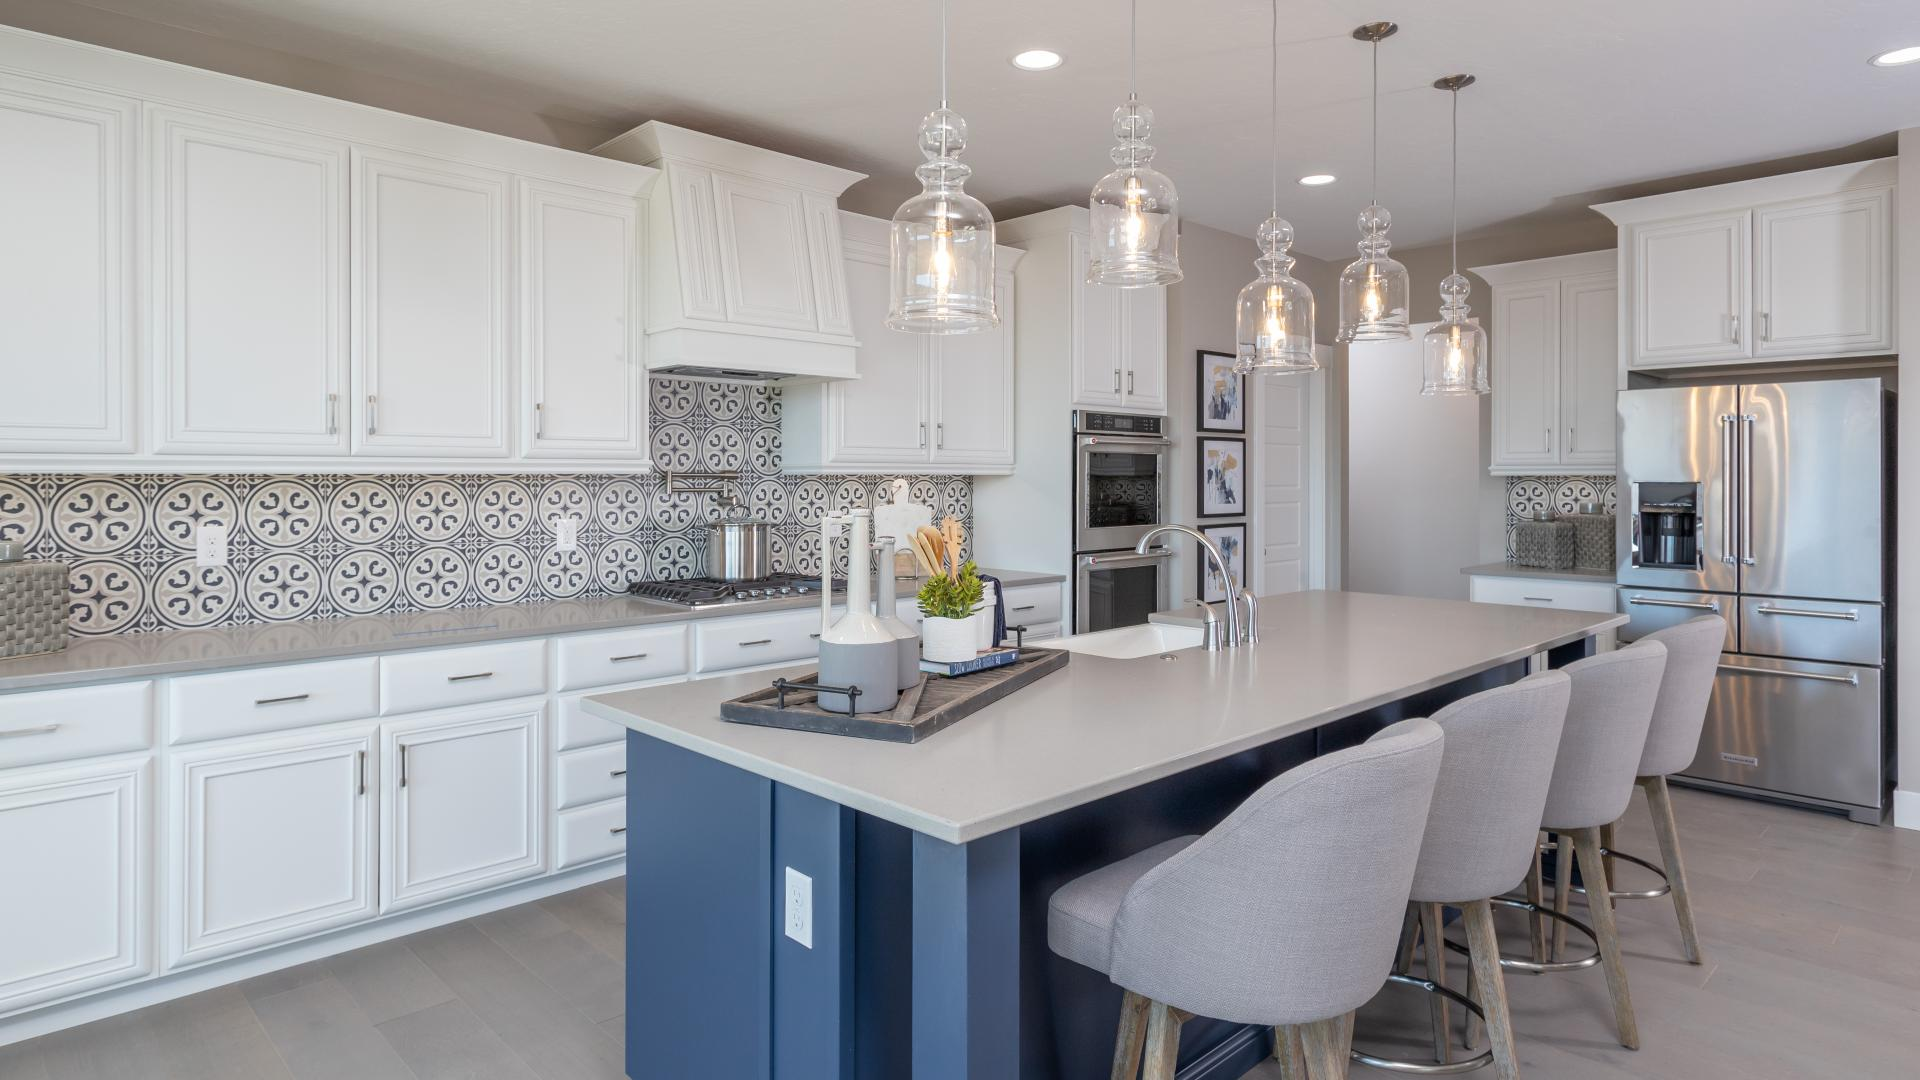 Spacious and convenient kitchens